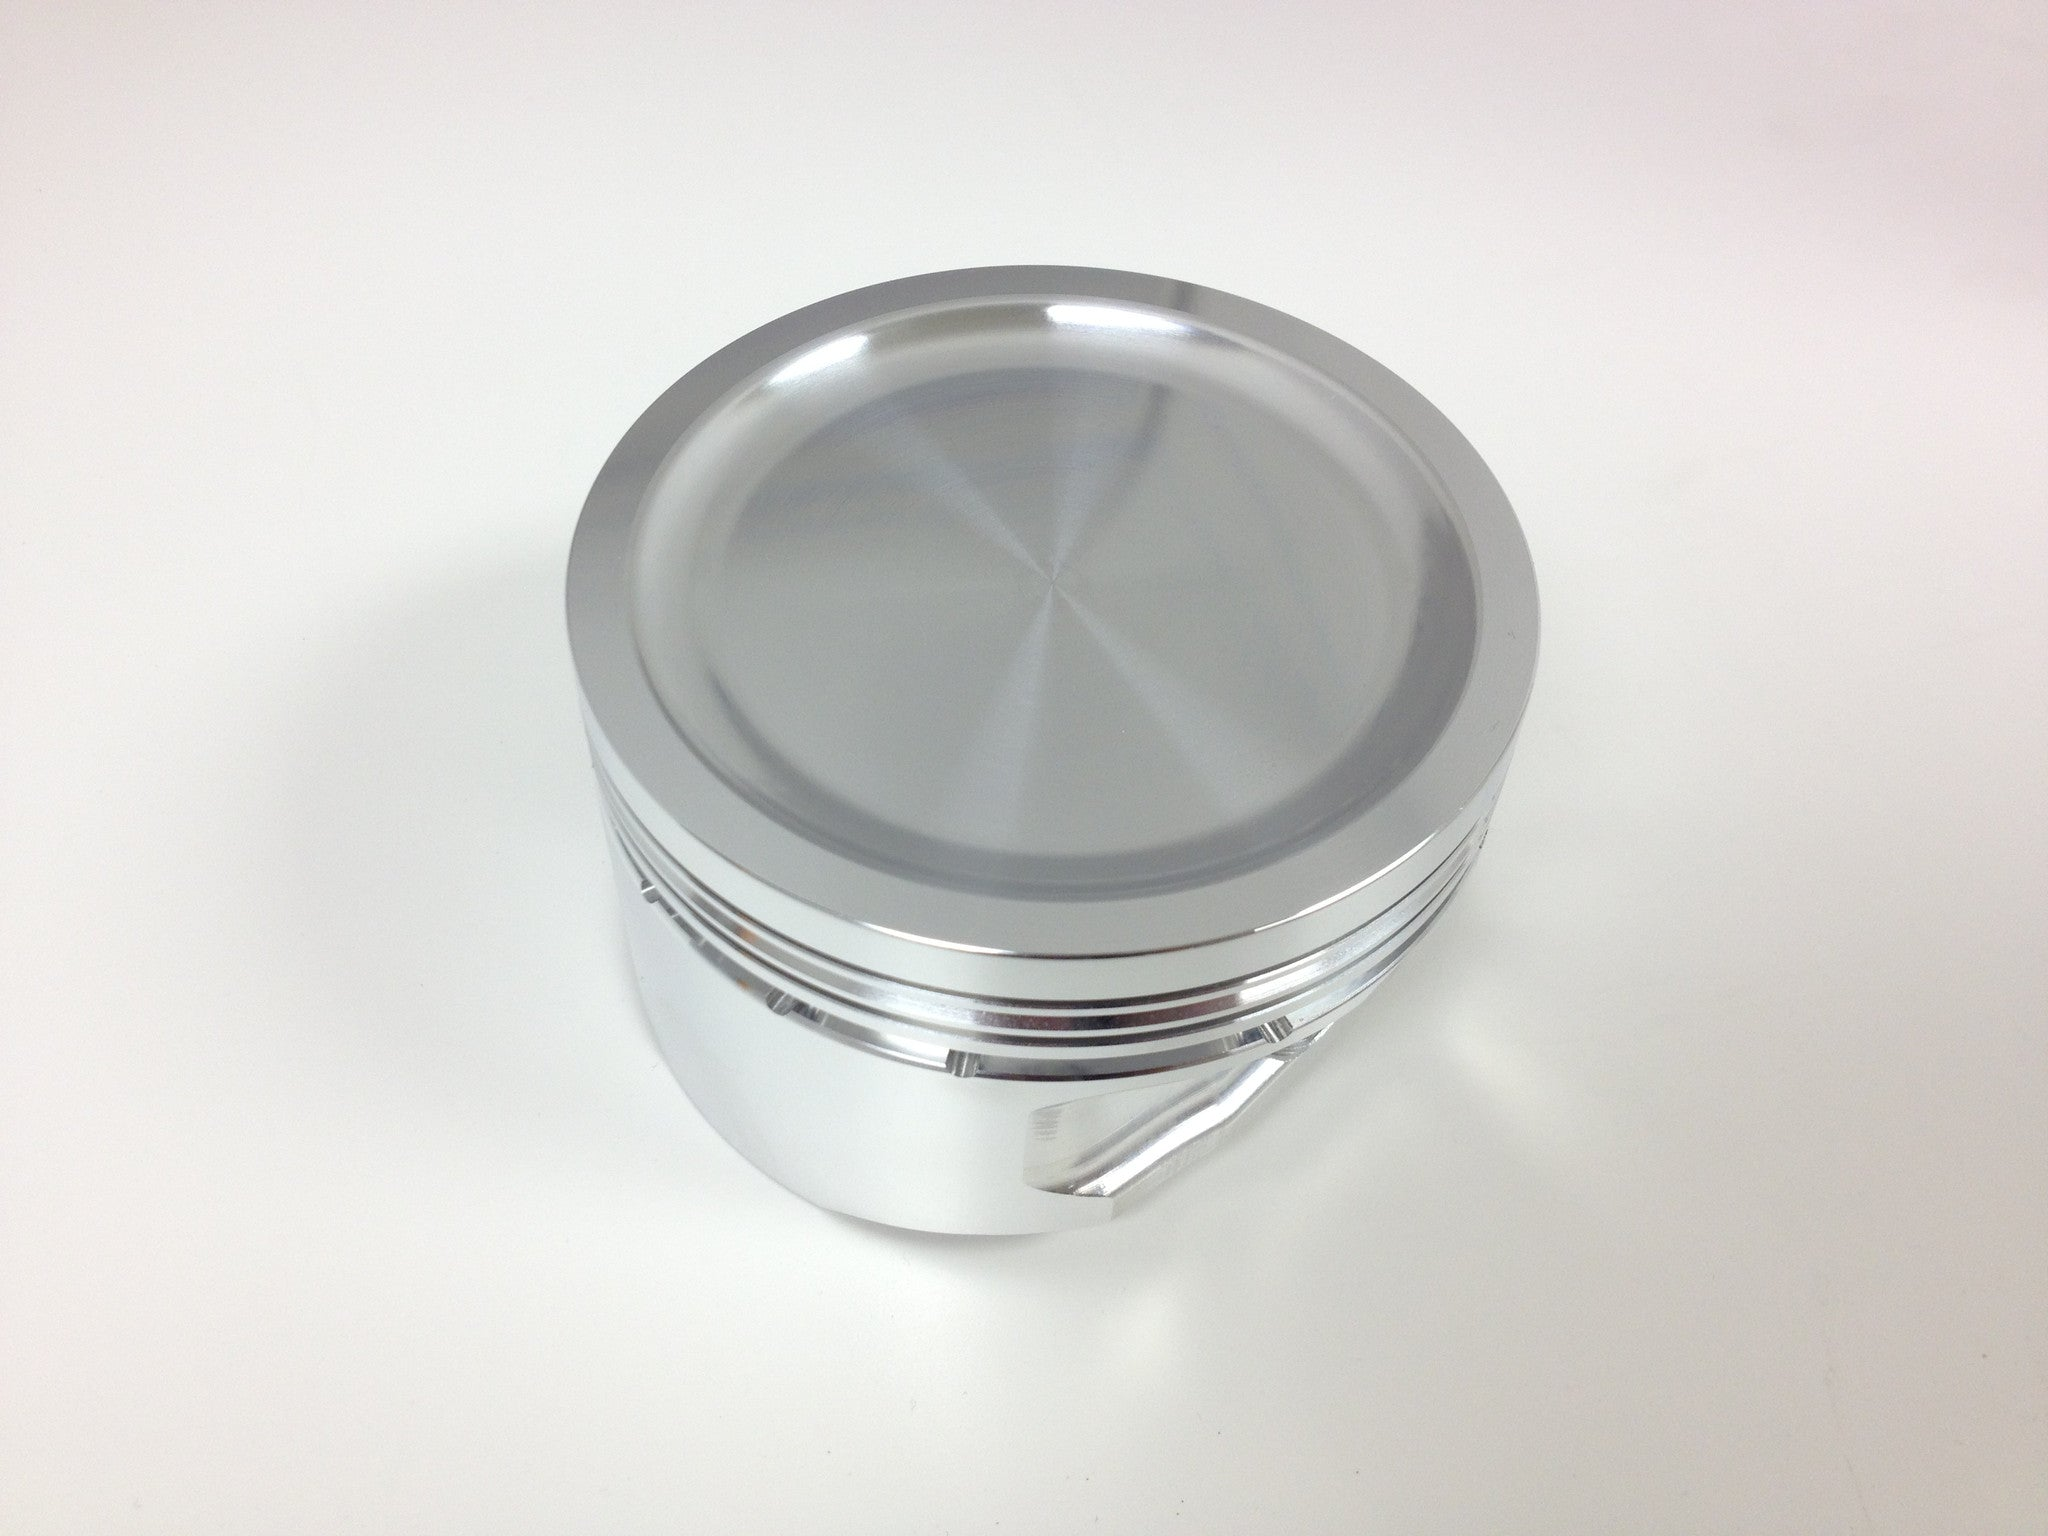 Fswerks Forged 2 0l Pistons Ford Duratec 2005 2011